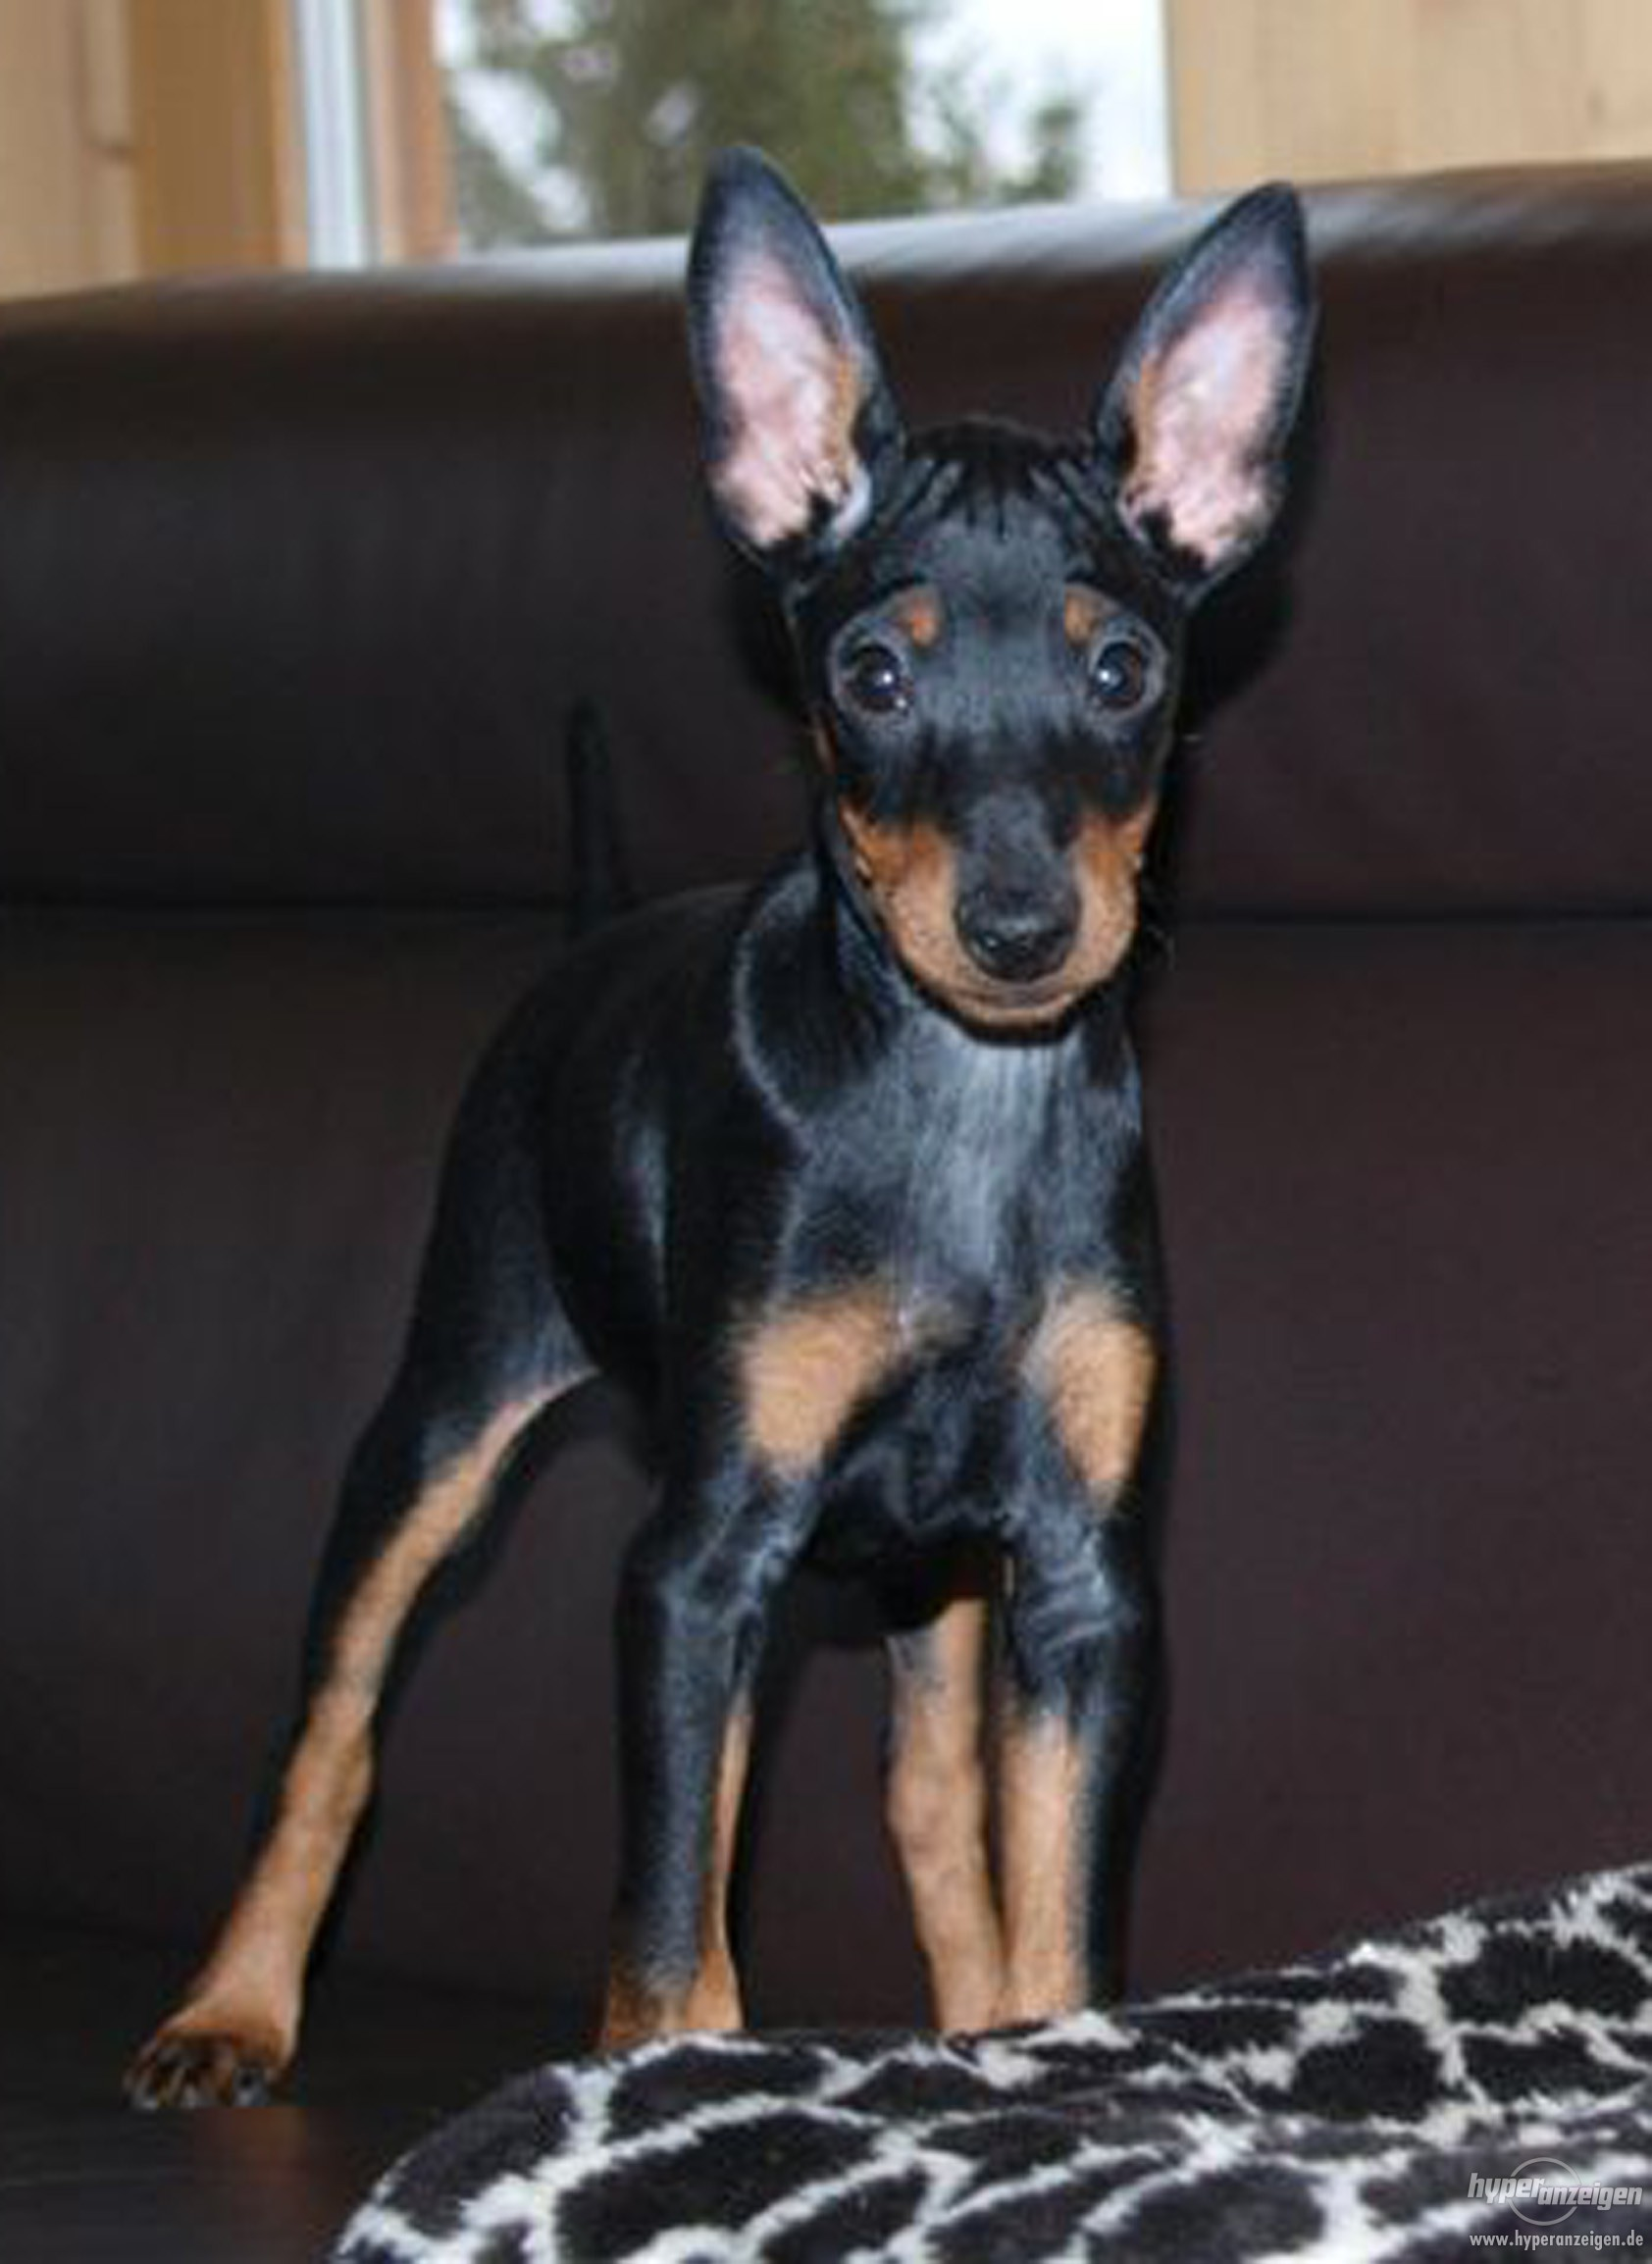 English Toy Terrier(Black Tan) on couch wallpaper